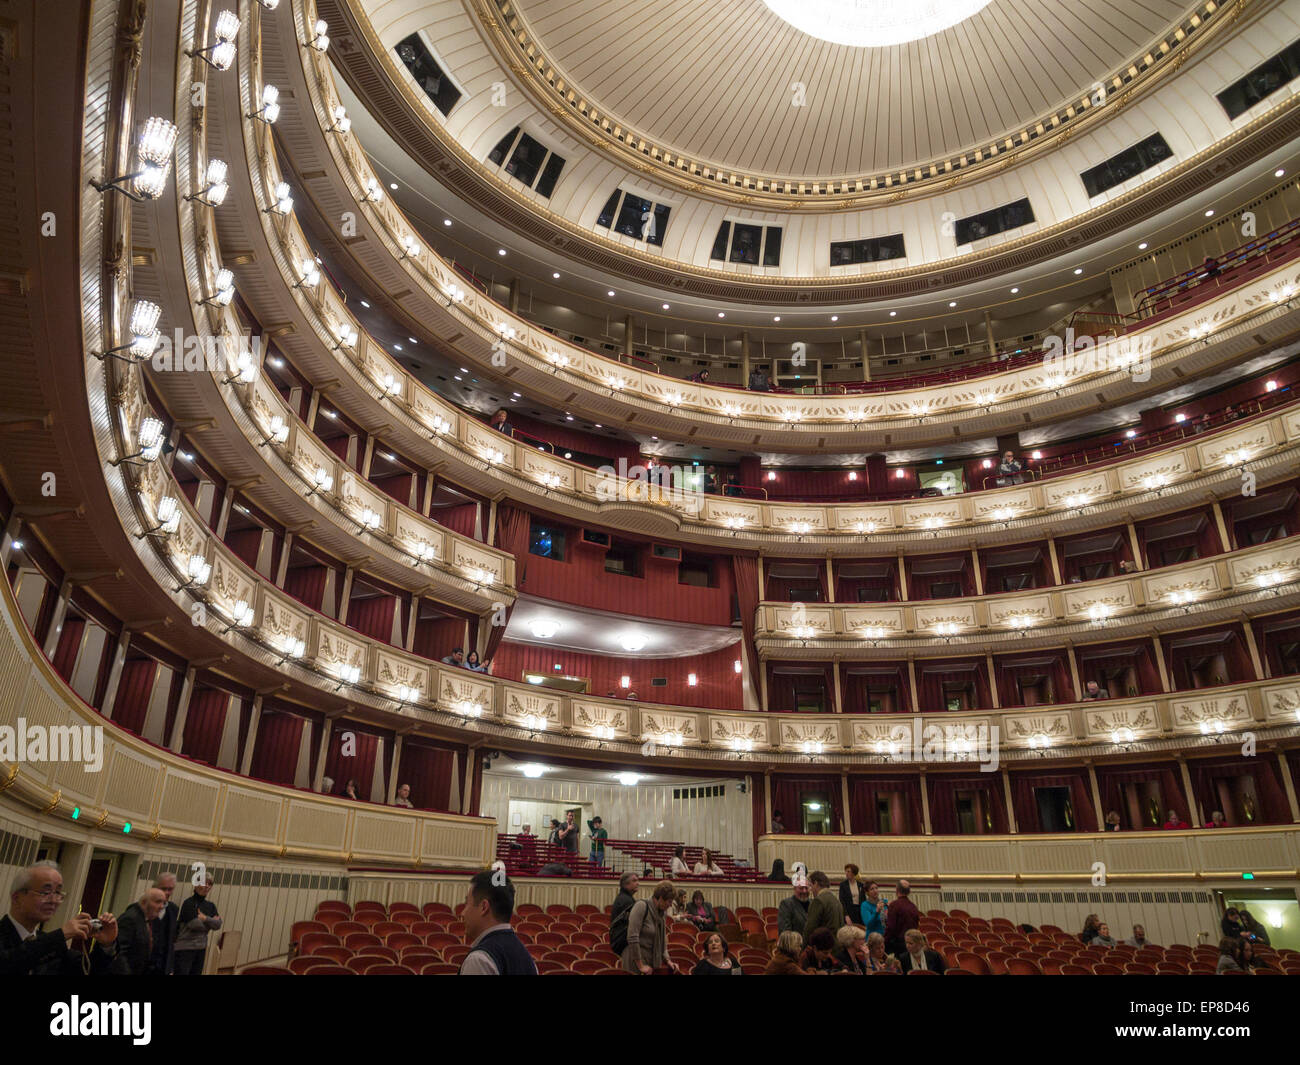 Balconies of the main hall at Vienna State Opera. The curved tiers of balconies with the orchestra seating below. - Stock Image